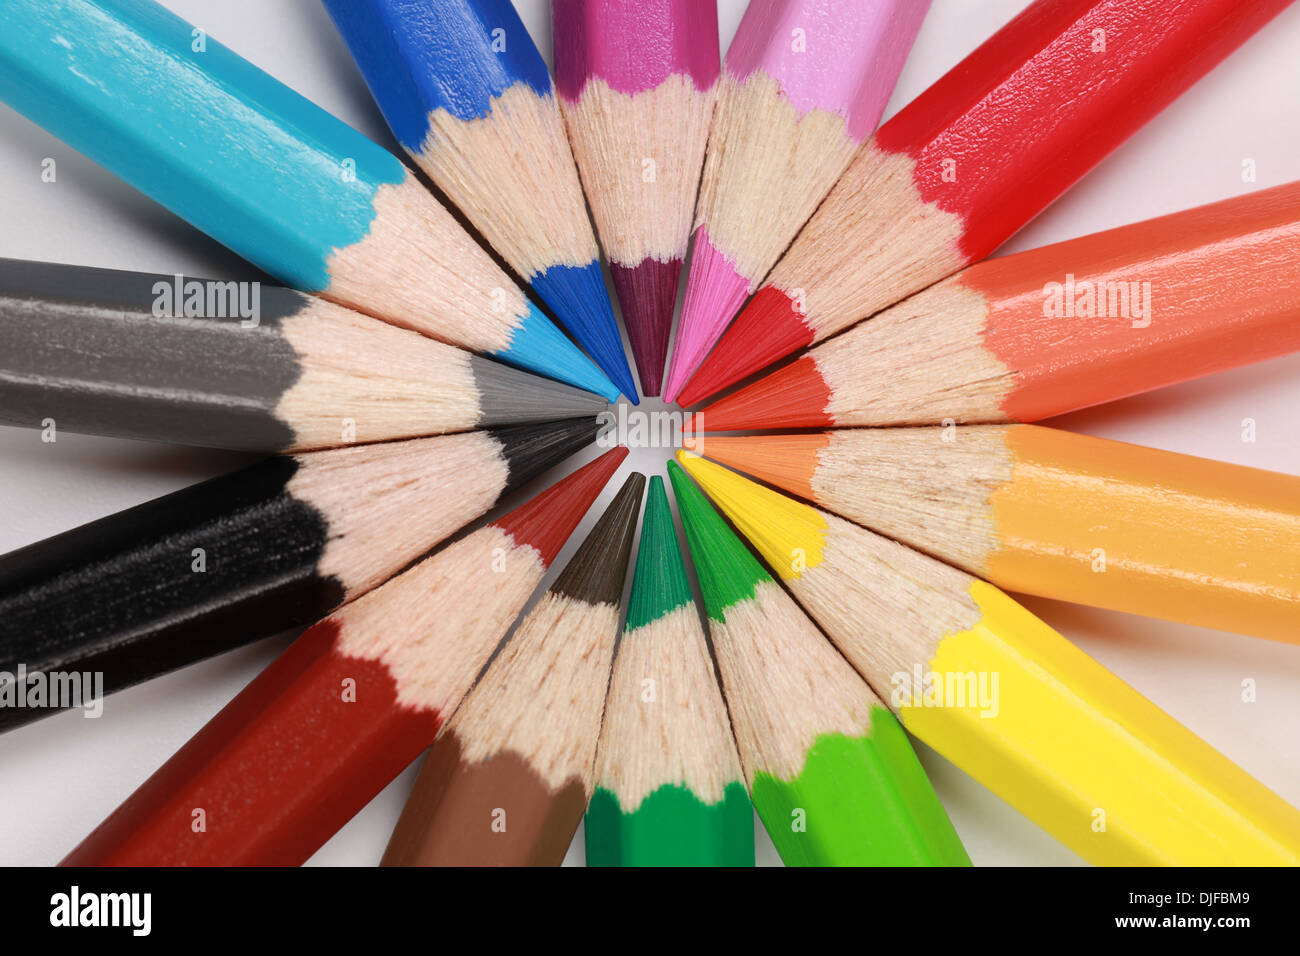 Colored pencils in a row forming a circle - Stock Image